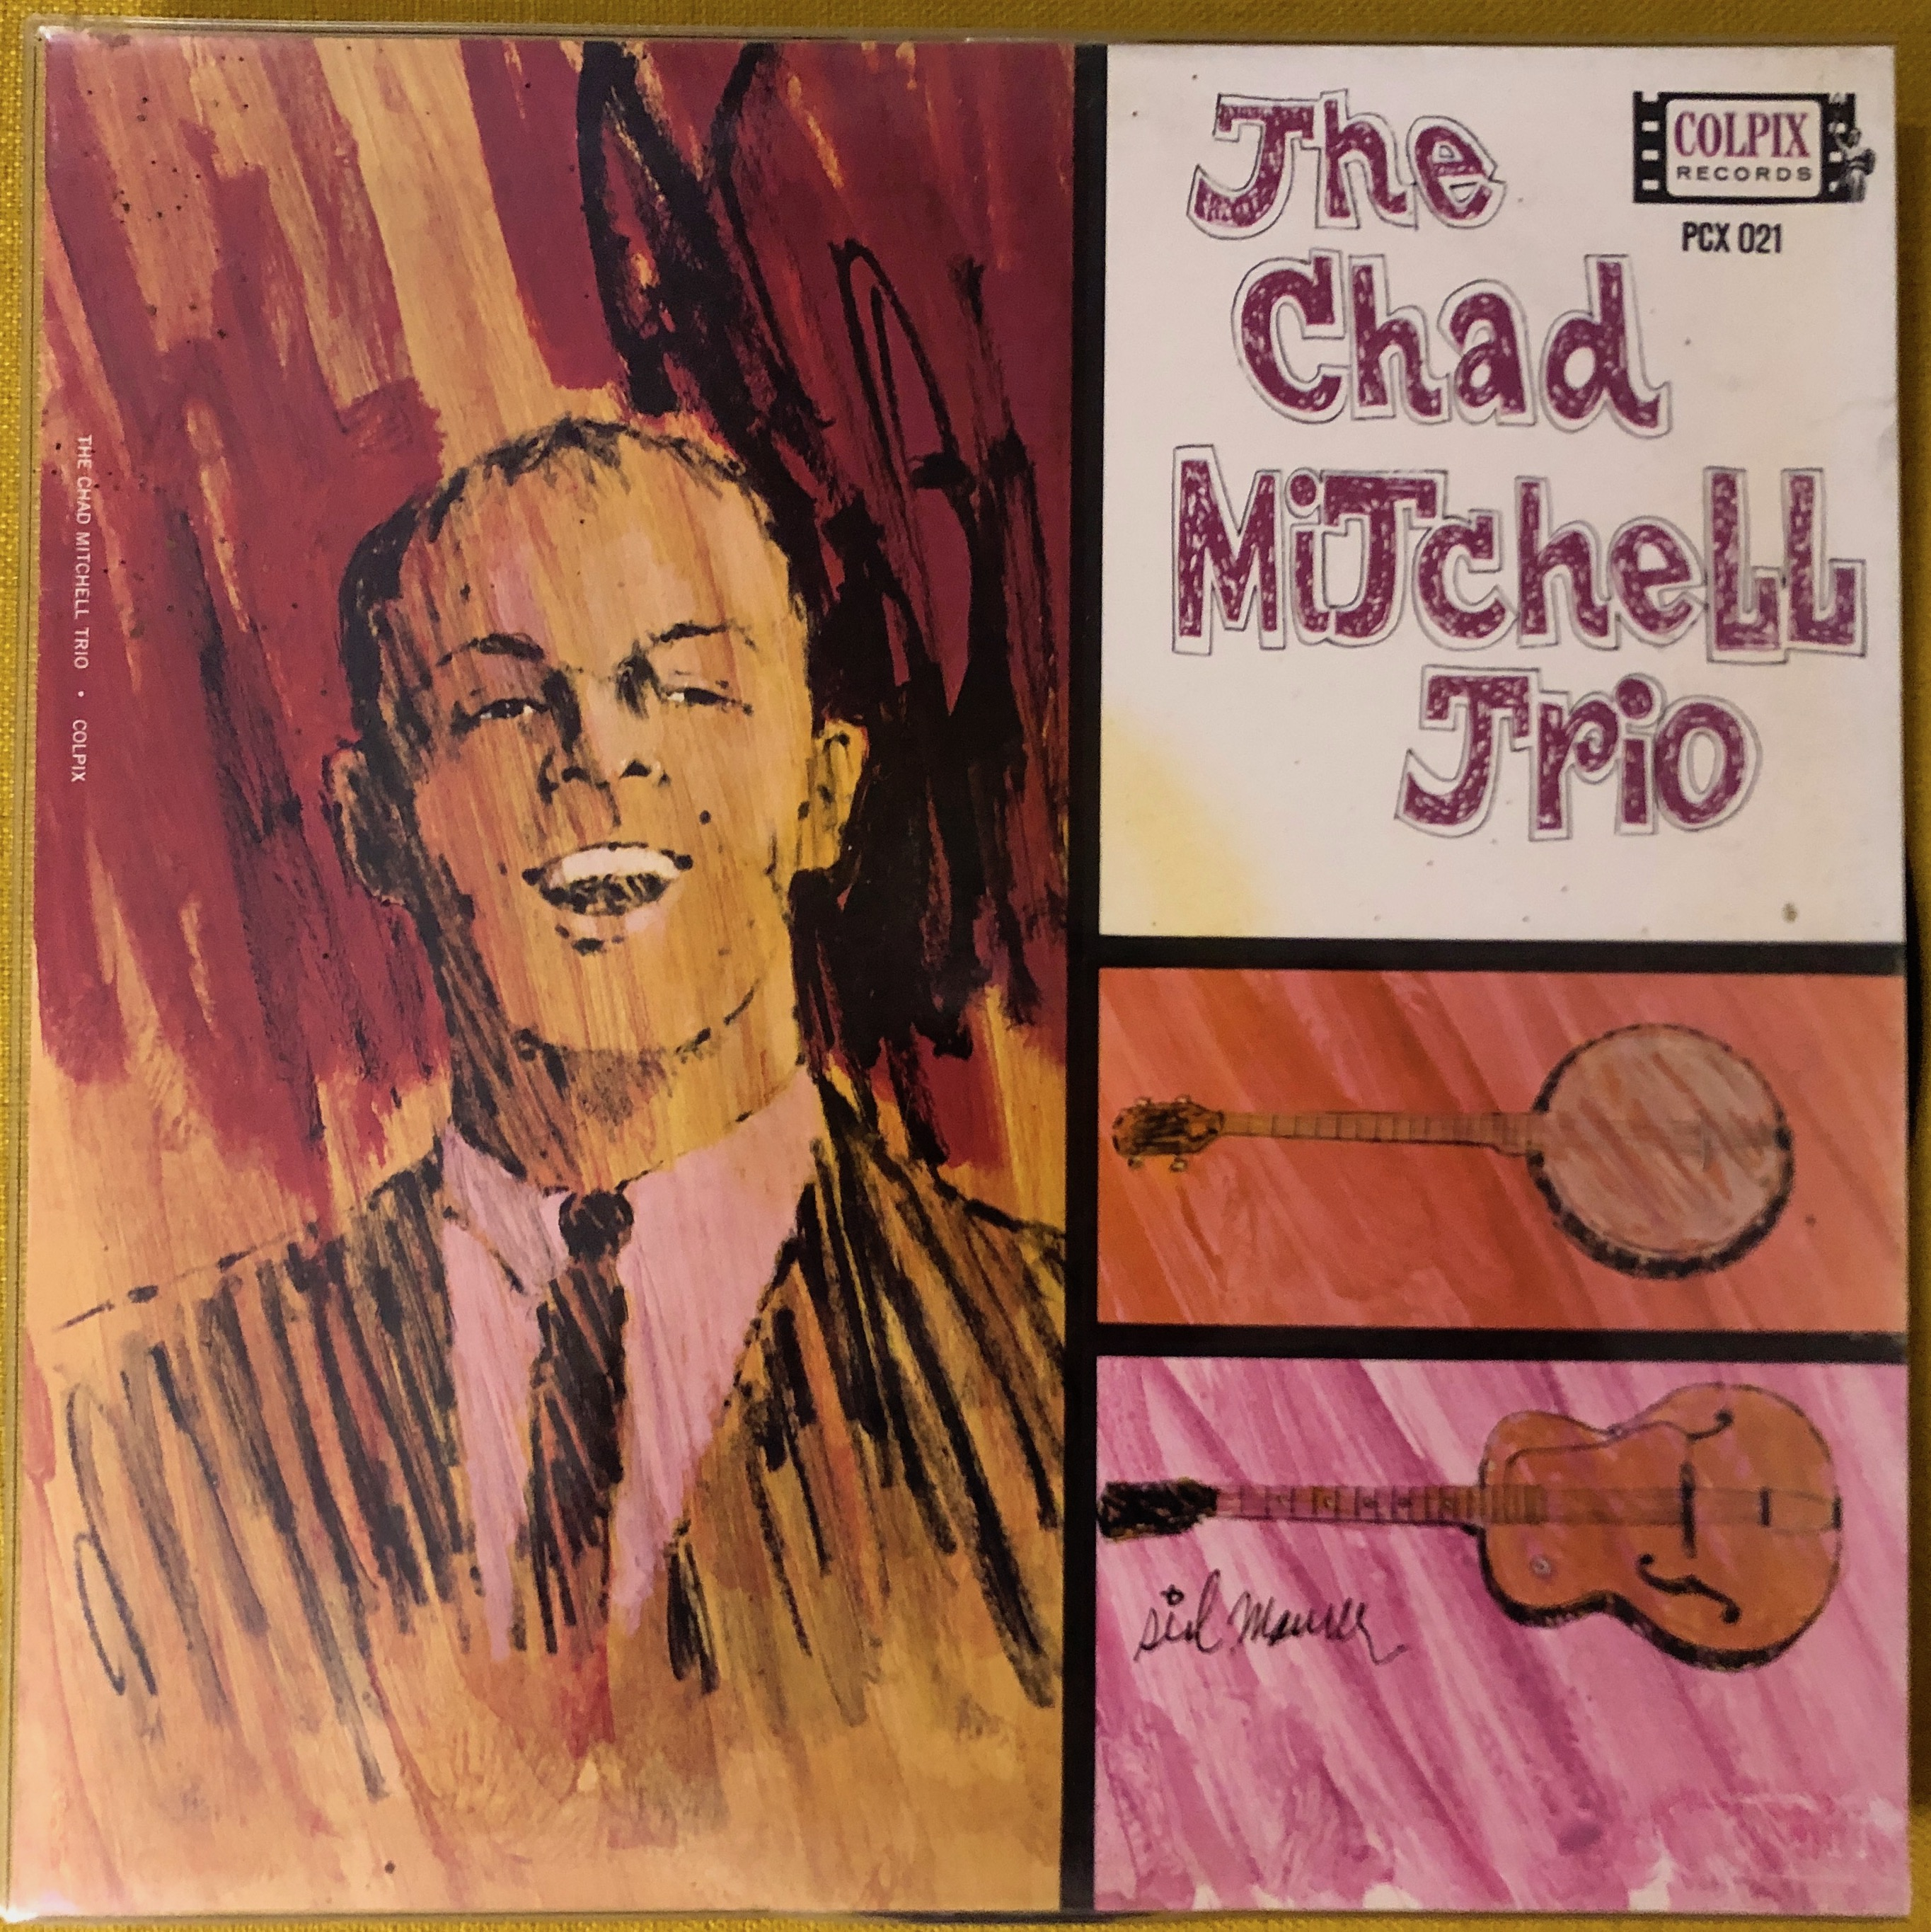 Chad Mitchell Trio ‎– The Chad Mitchell Trio